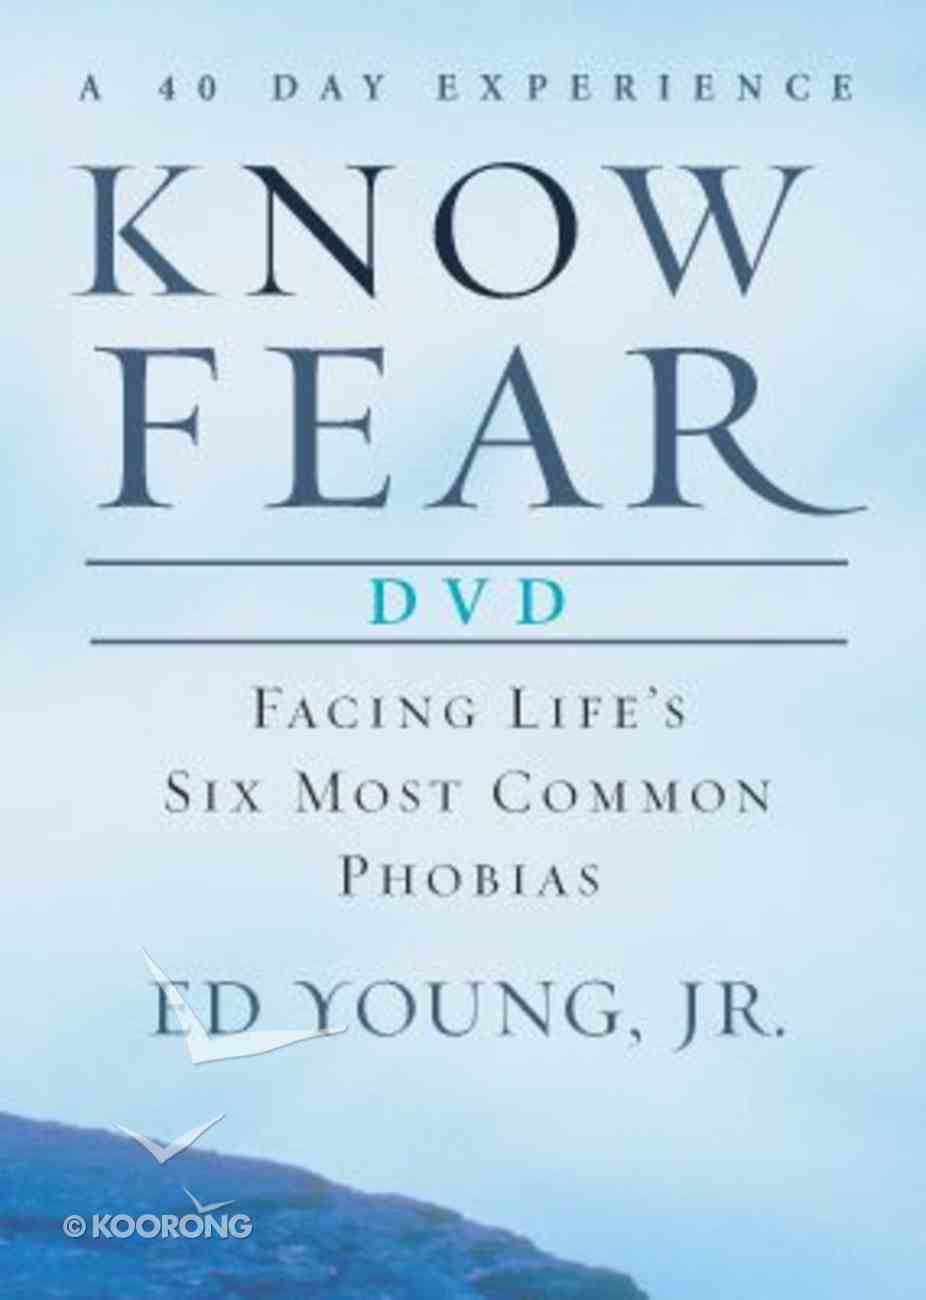 40 Day Experience #03: Know Fear (Dvd) DVD